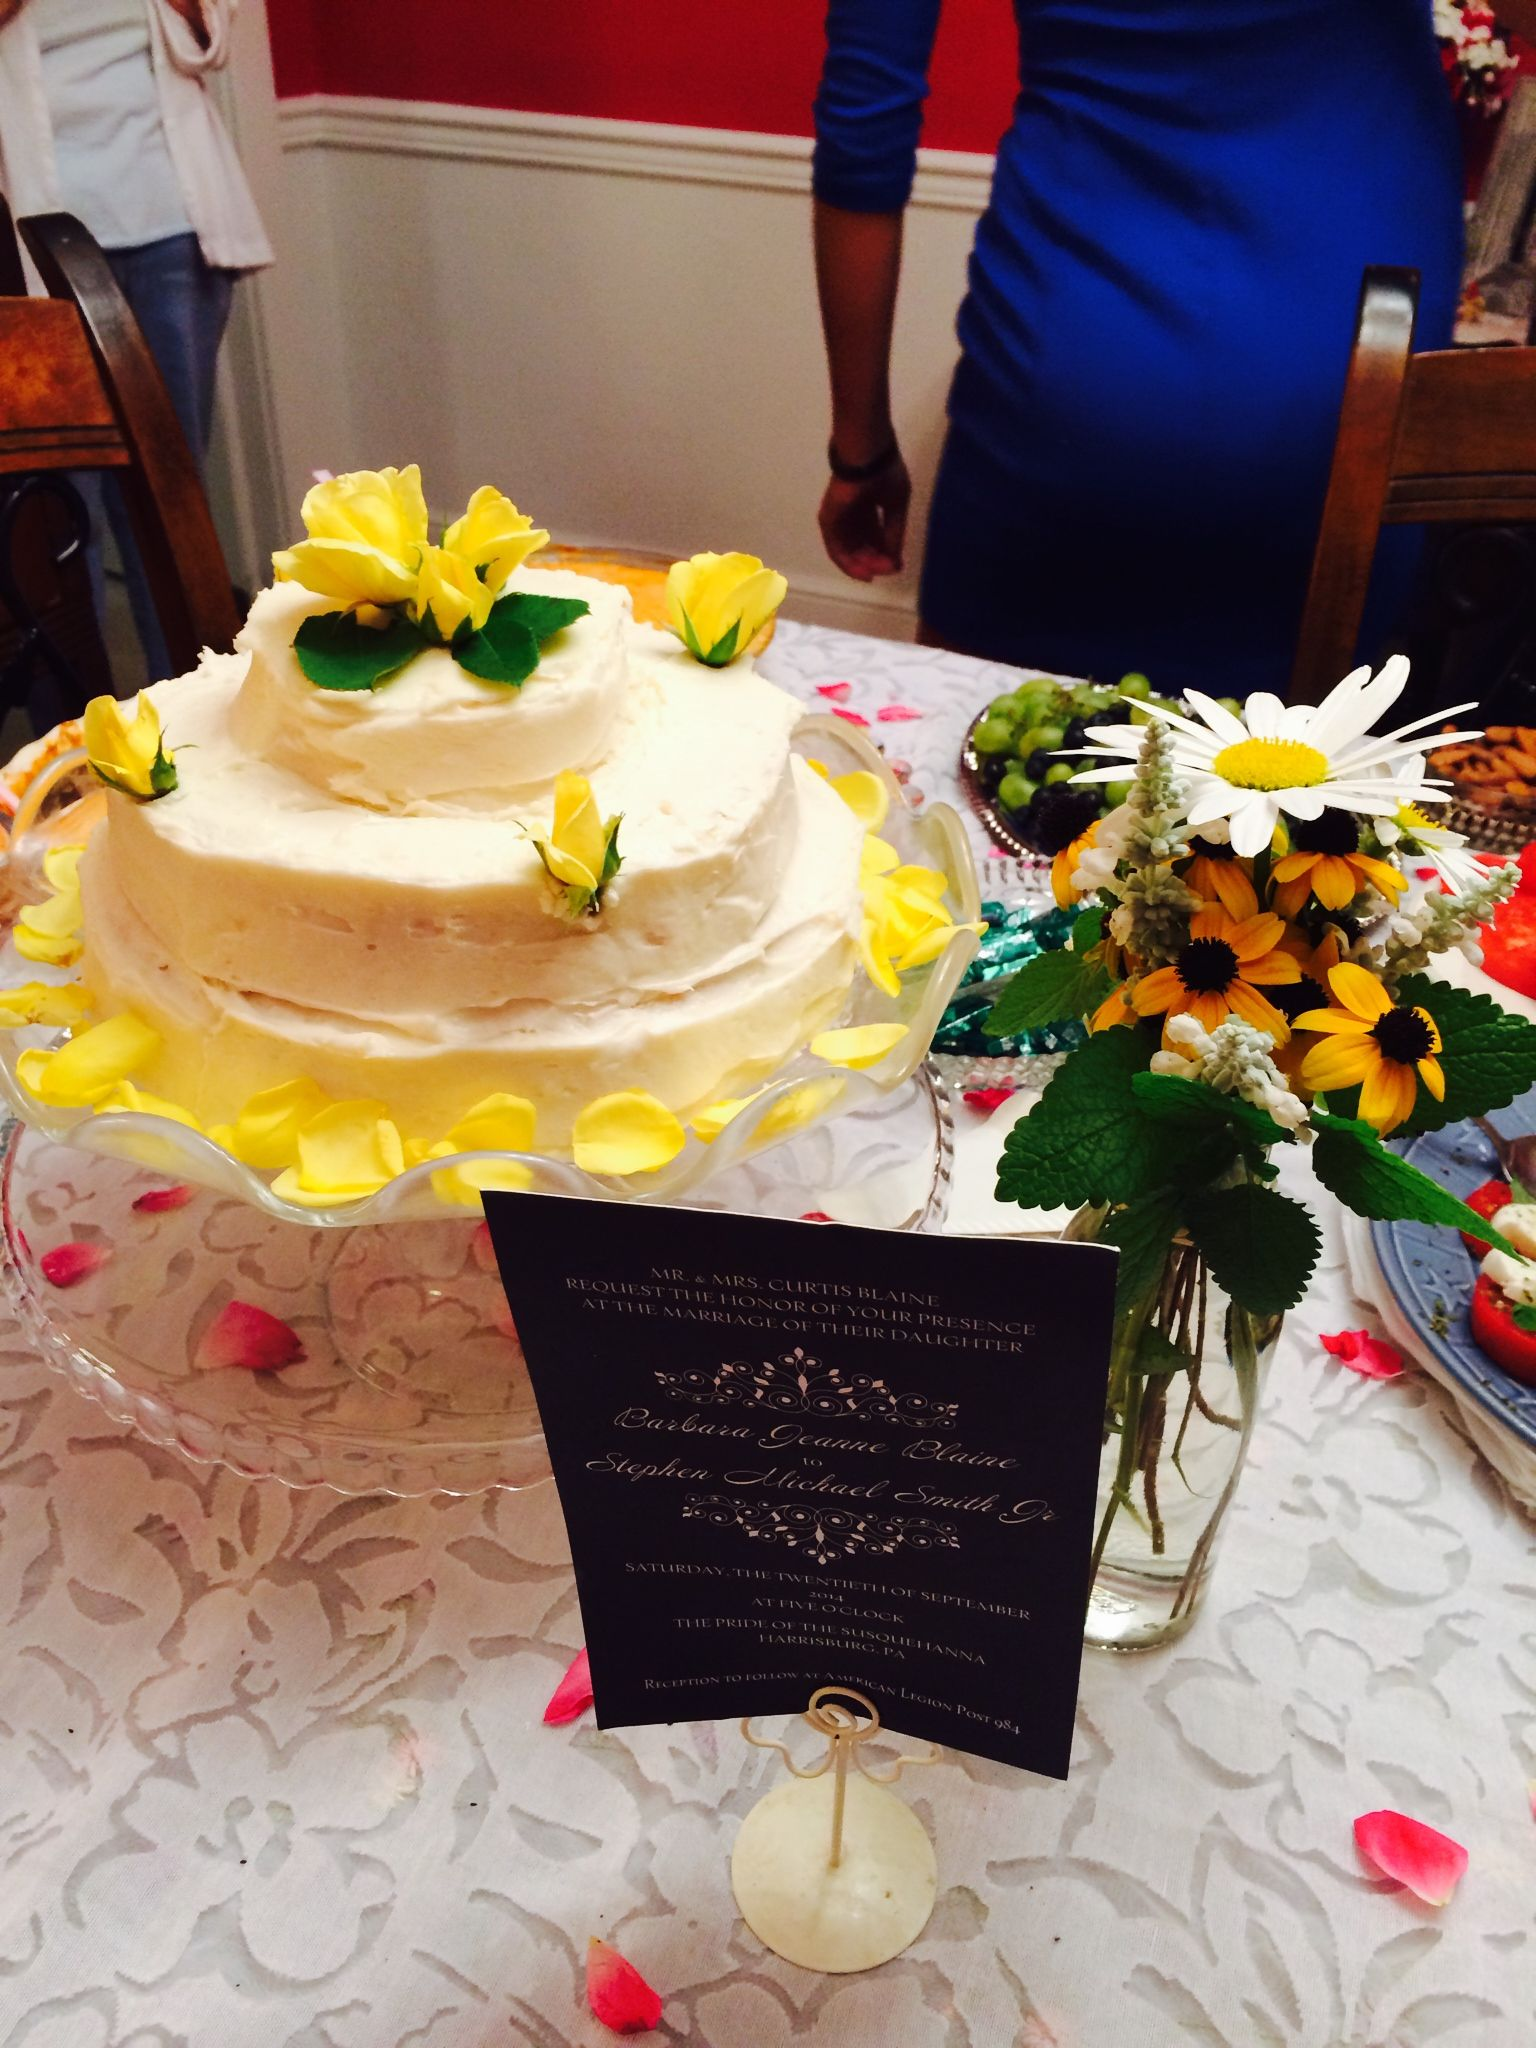 Buttercream cake for barbaras bridal shower with images